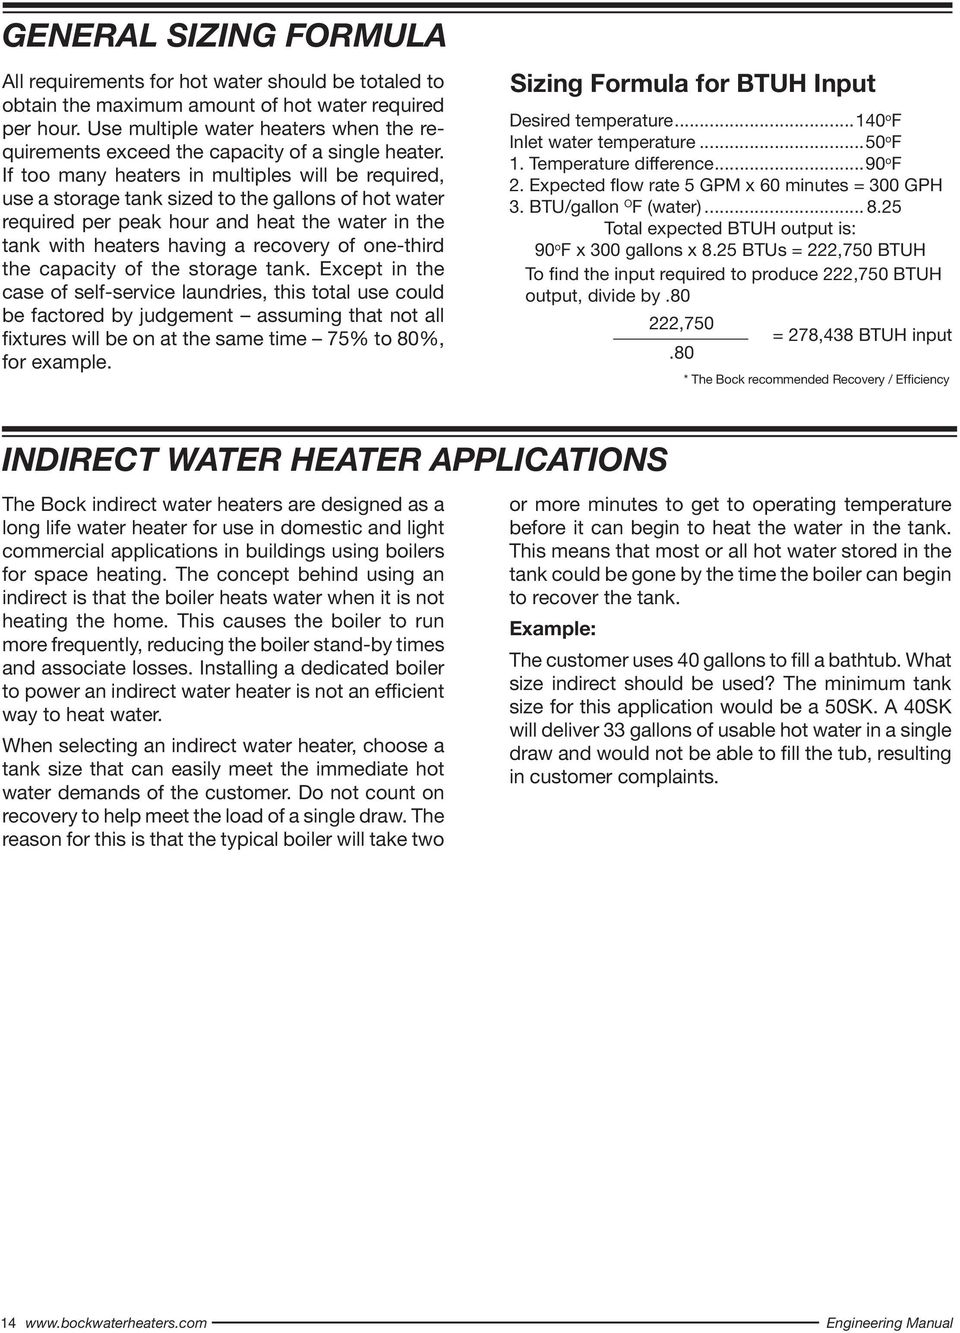 GENERAL SIZING FORMULA INDIRECT WATER HEATER APPLICATIONS  Sizing